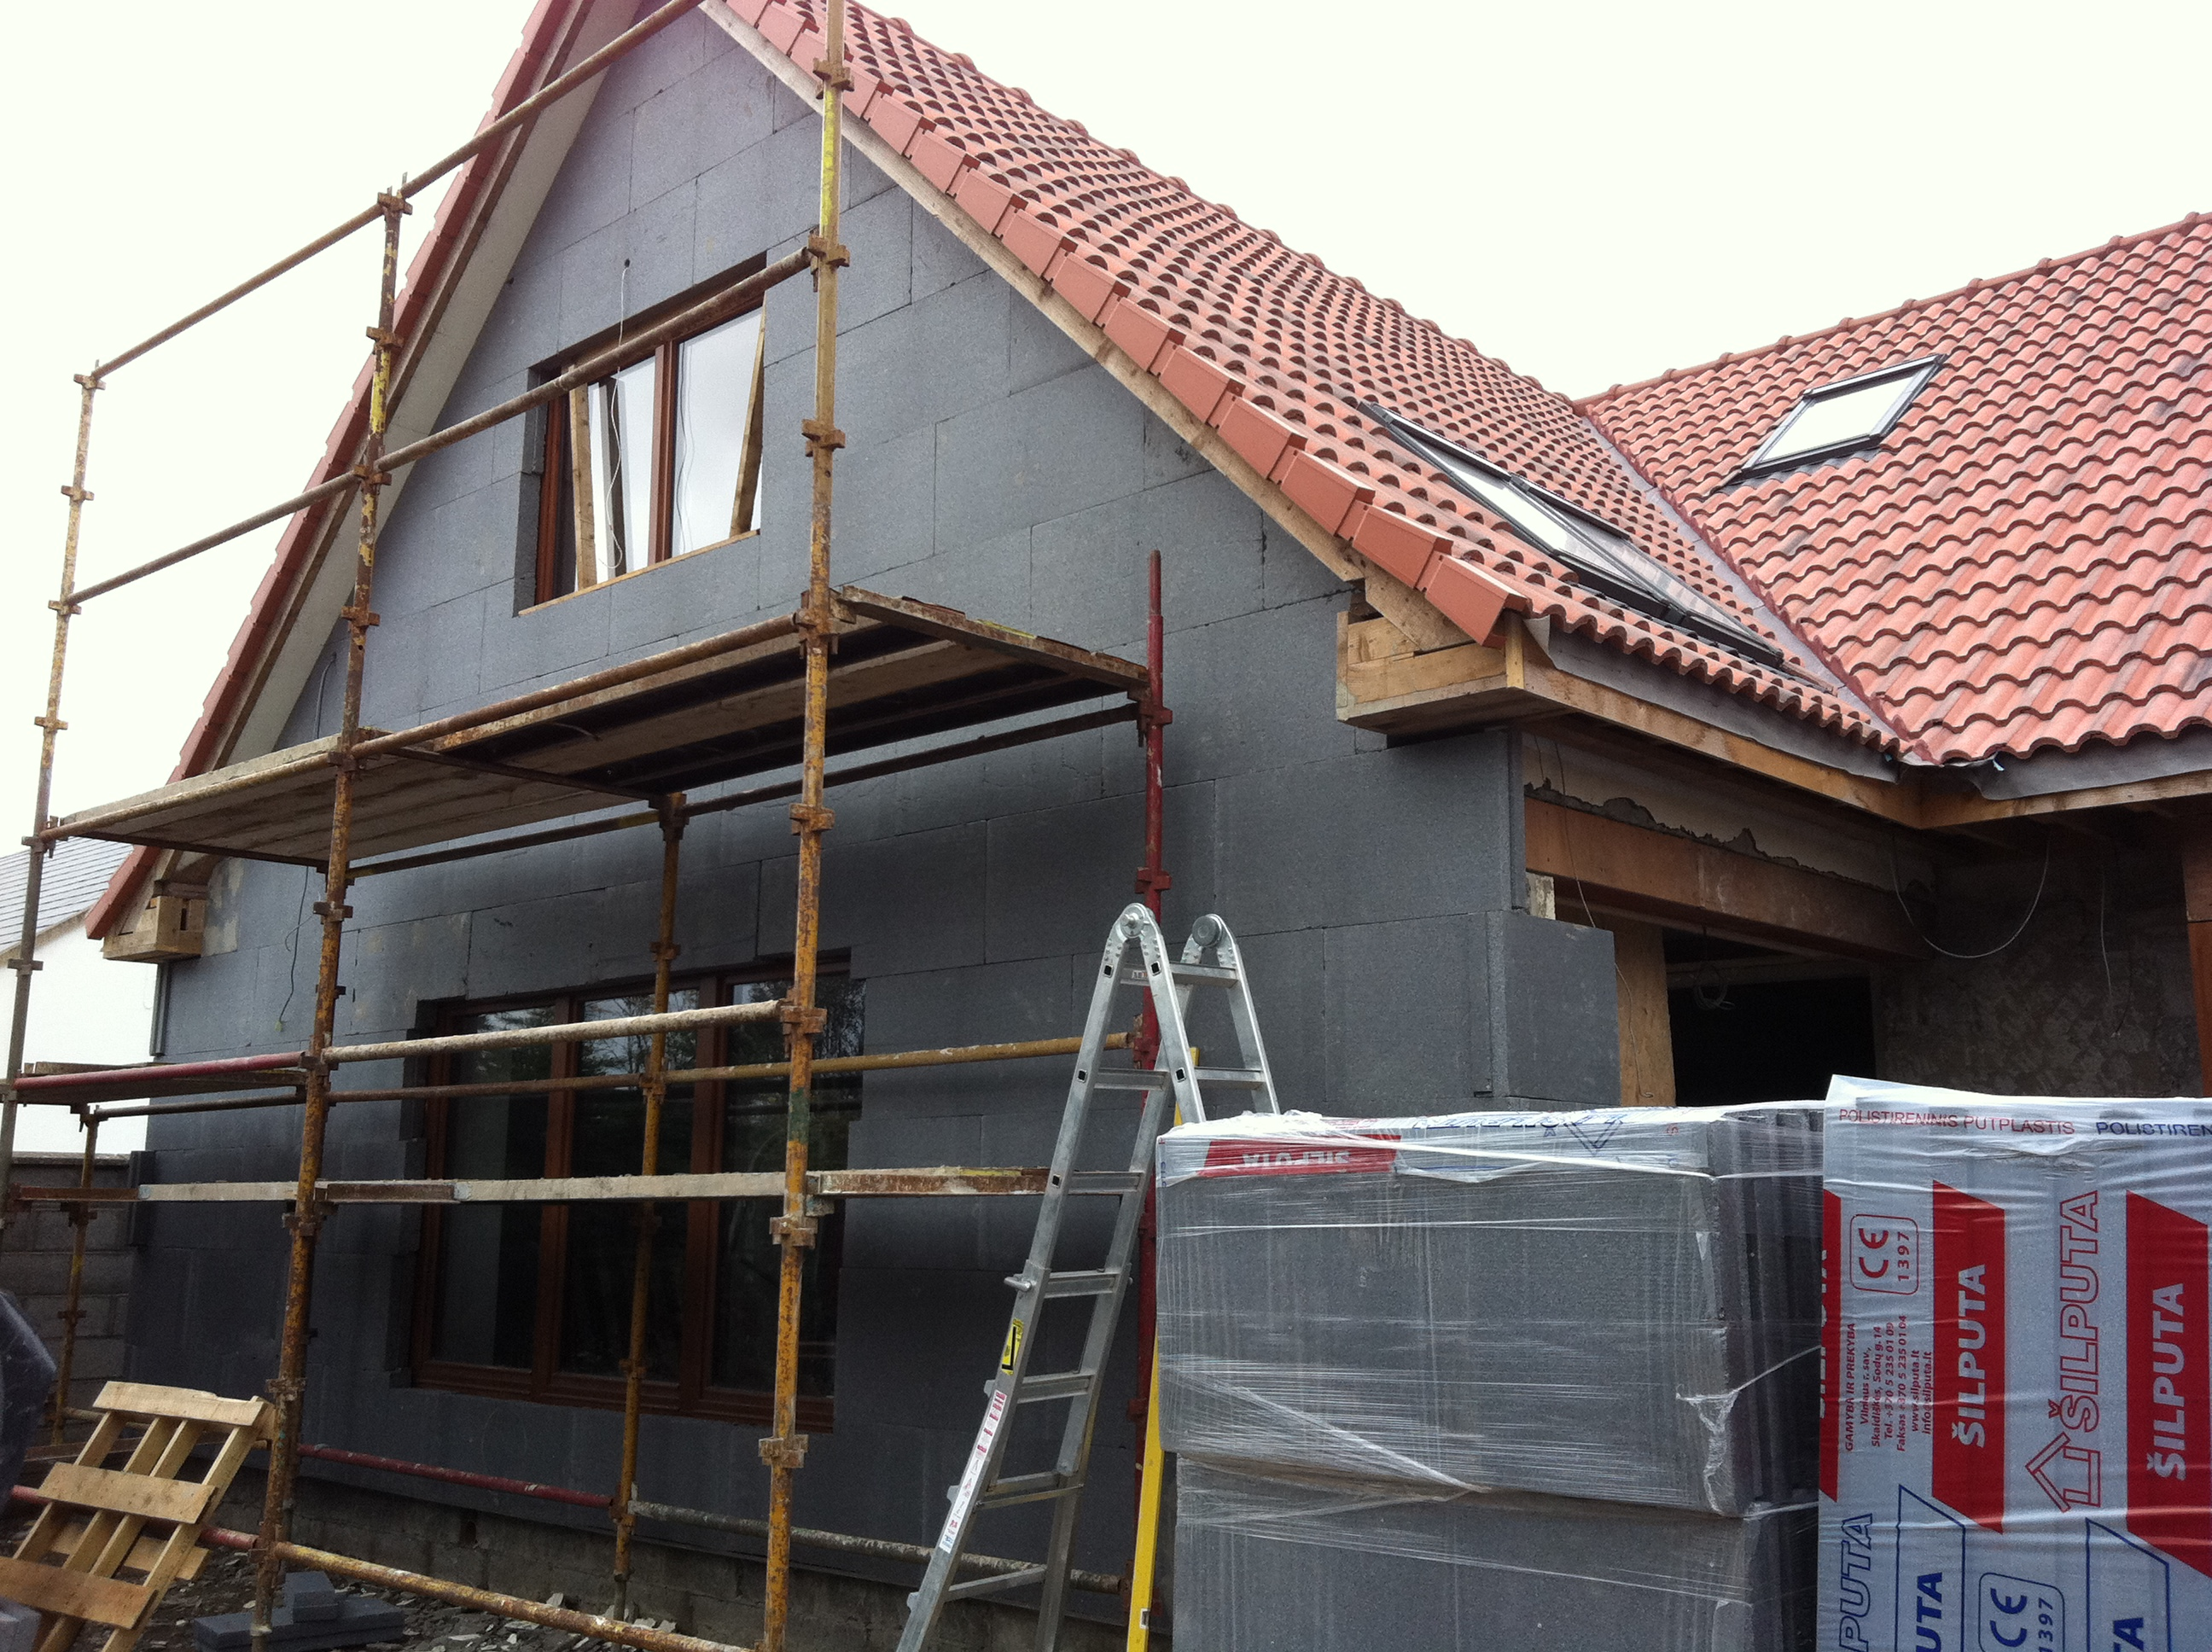 External house insulation face